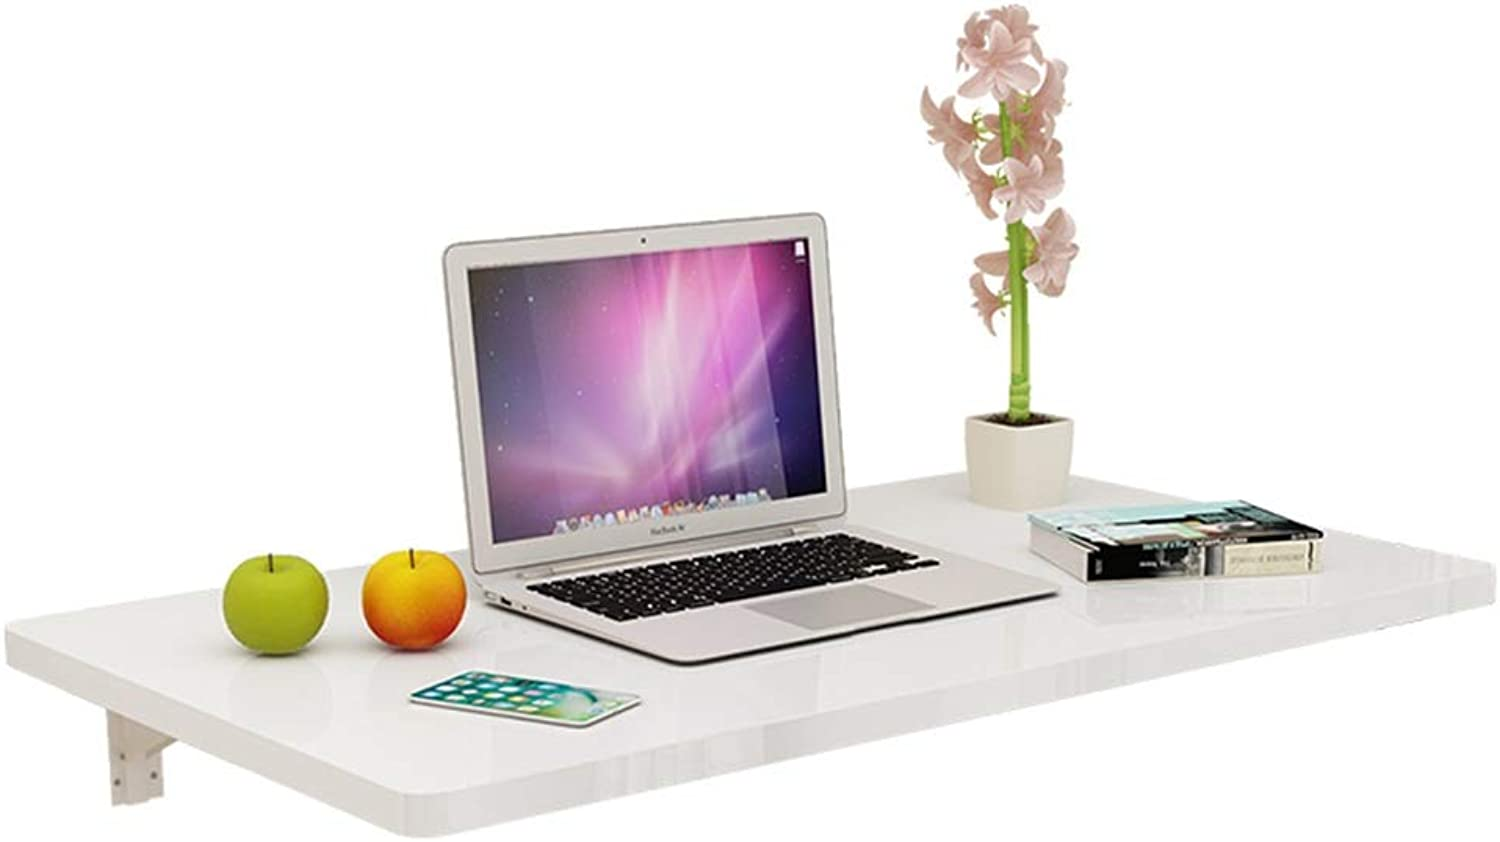 PENGFEI Wall-Mounted Table Laptop Stand Folding Desk Kitchen Shelf Save Space, 3 colors, 6 Sizes (color   White, Size   70x50CM)